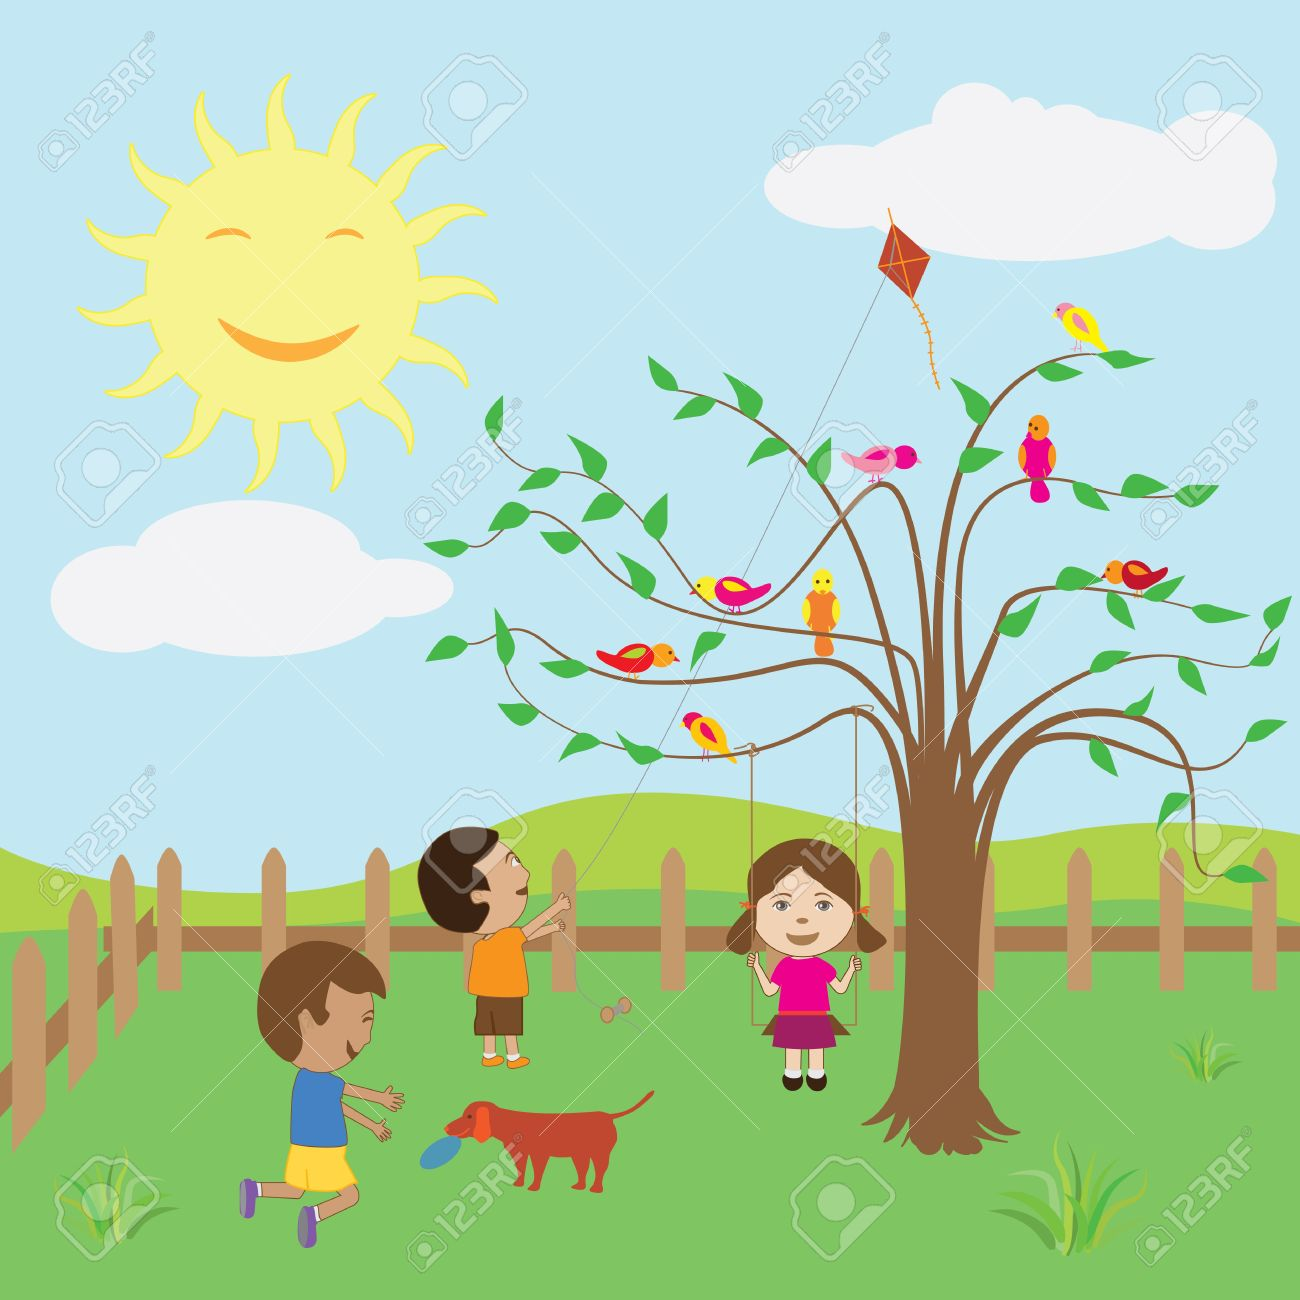 kids enjoying the sunny day at the backyard royalty free cliparts rh 123rf com sunny day clipart black and white sunny day clip art free